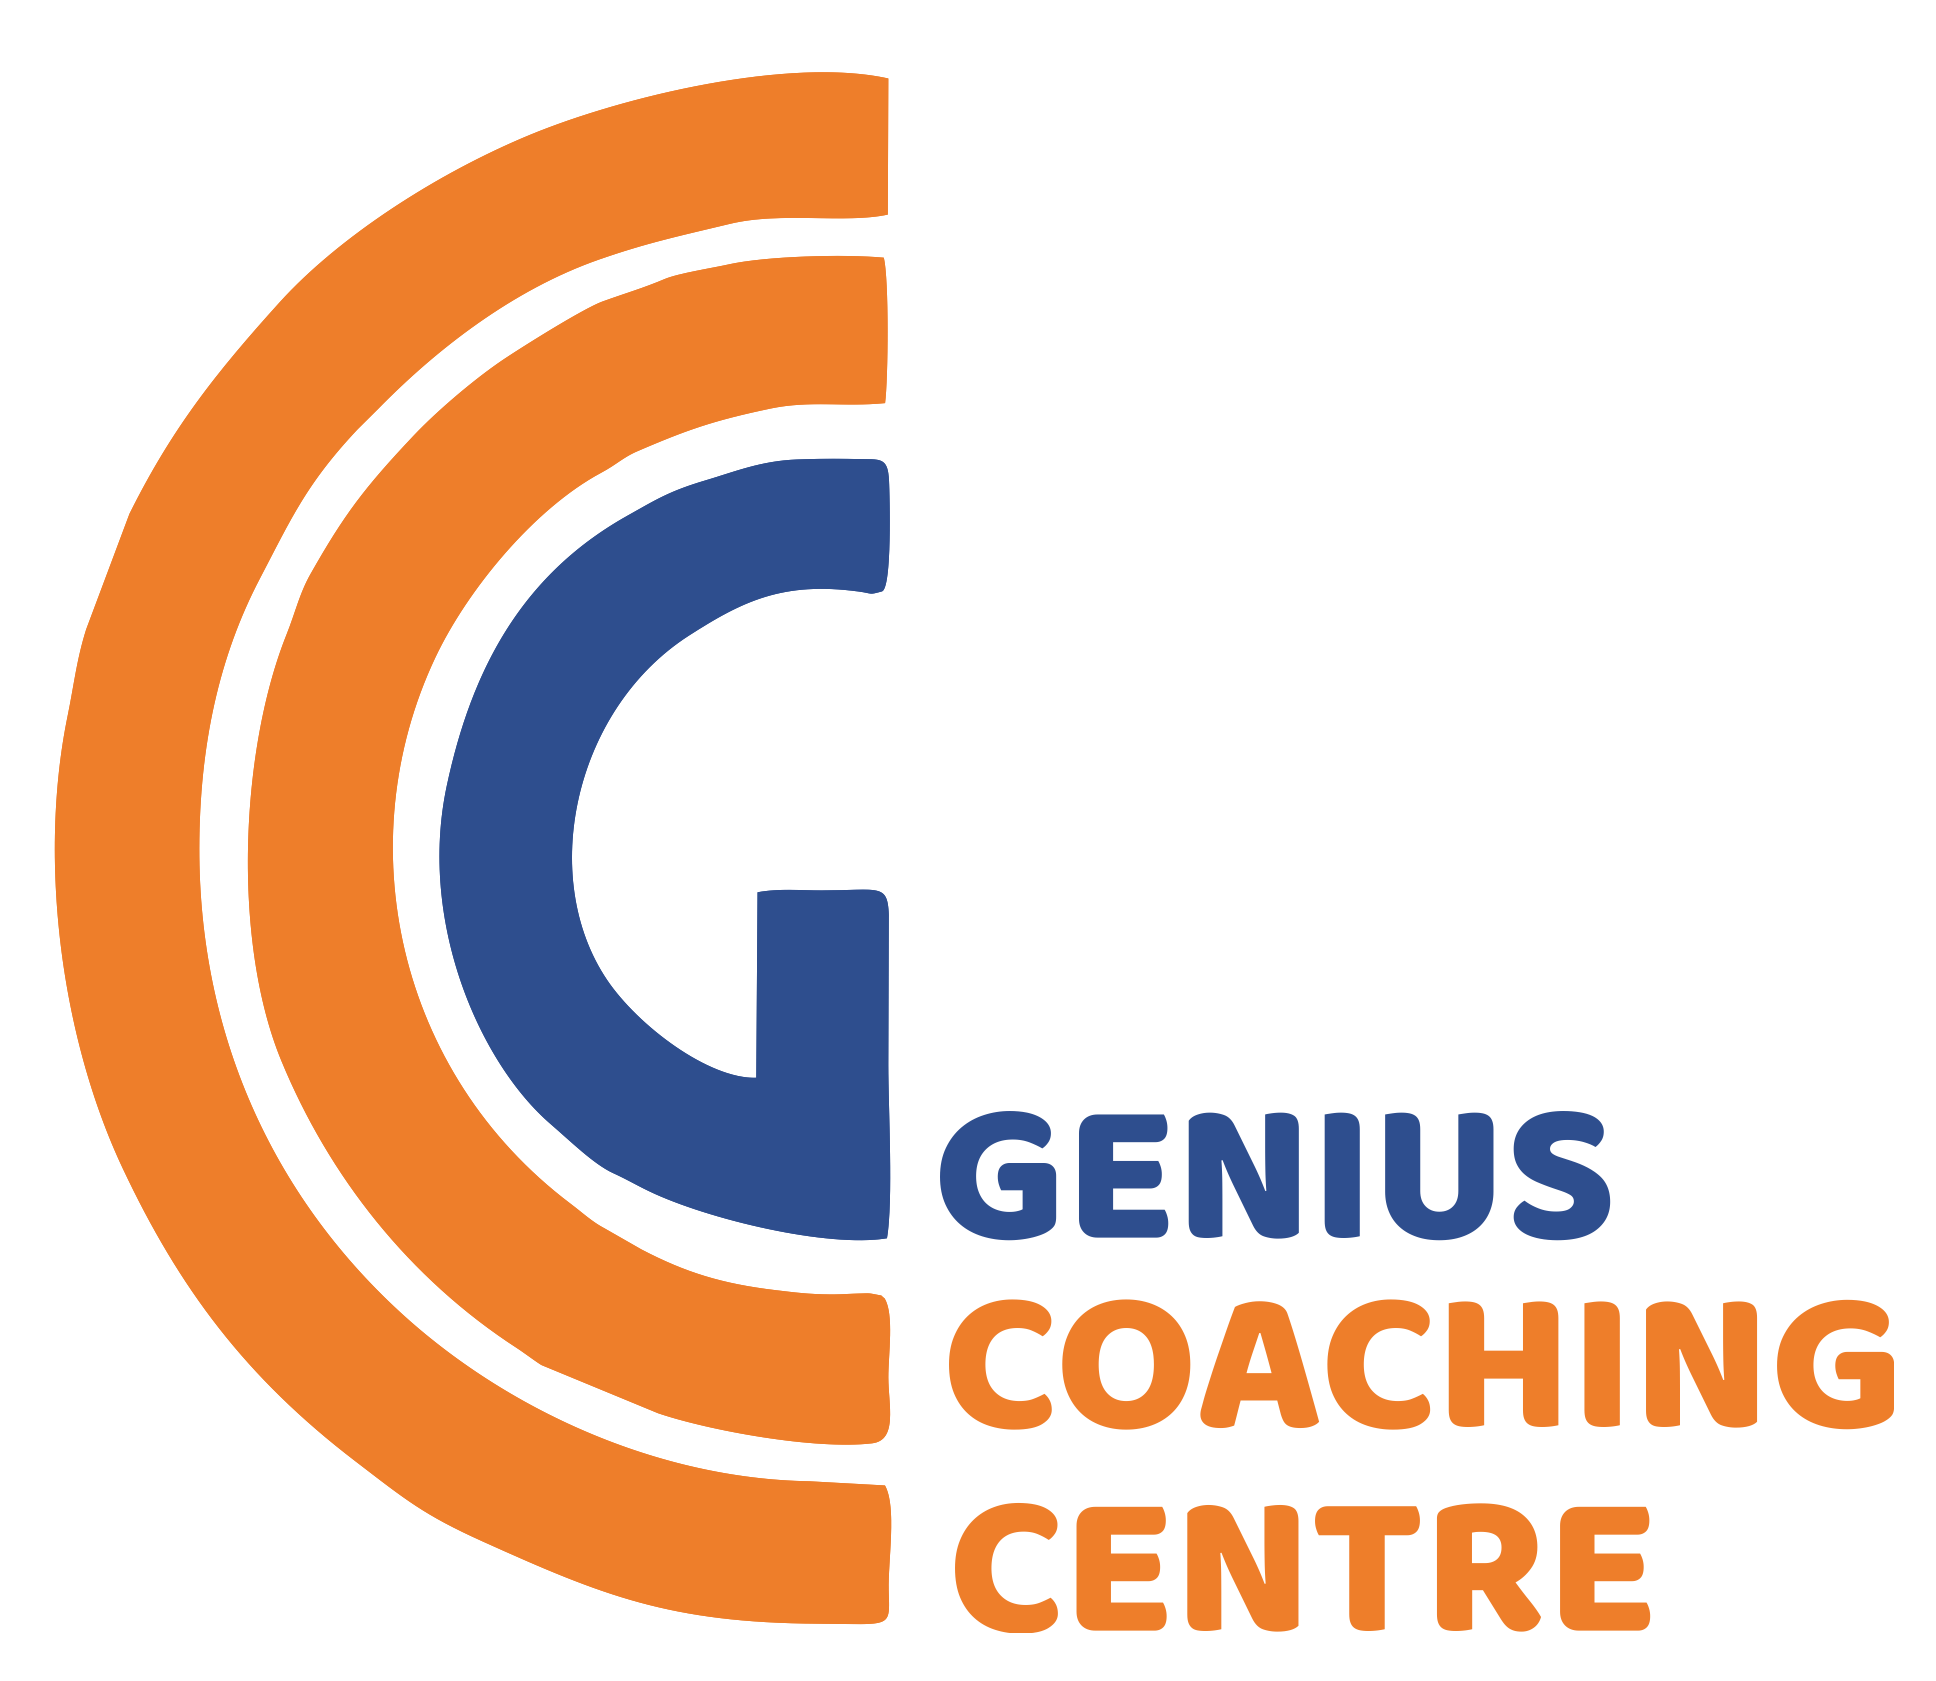 Leetcoaching Genius Coaching Center